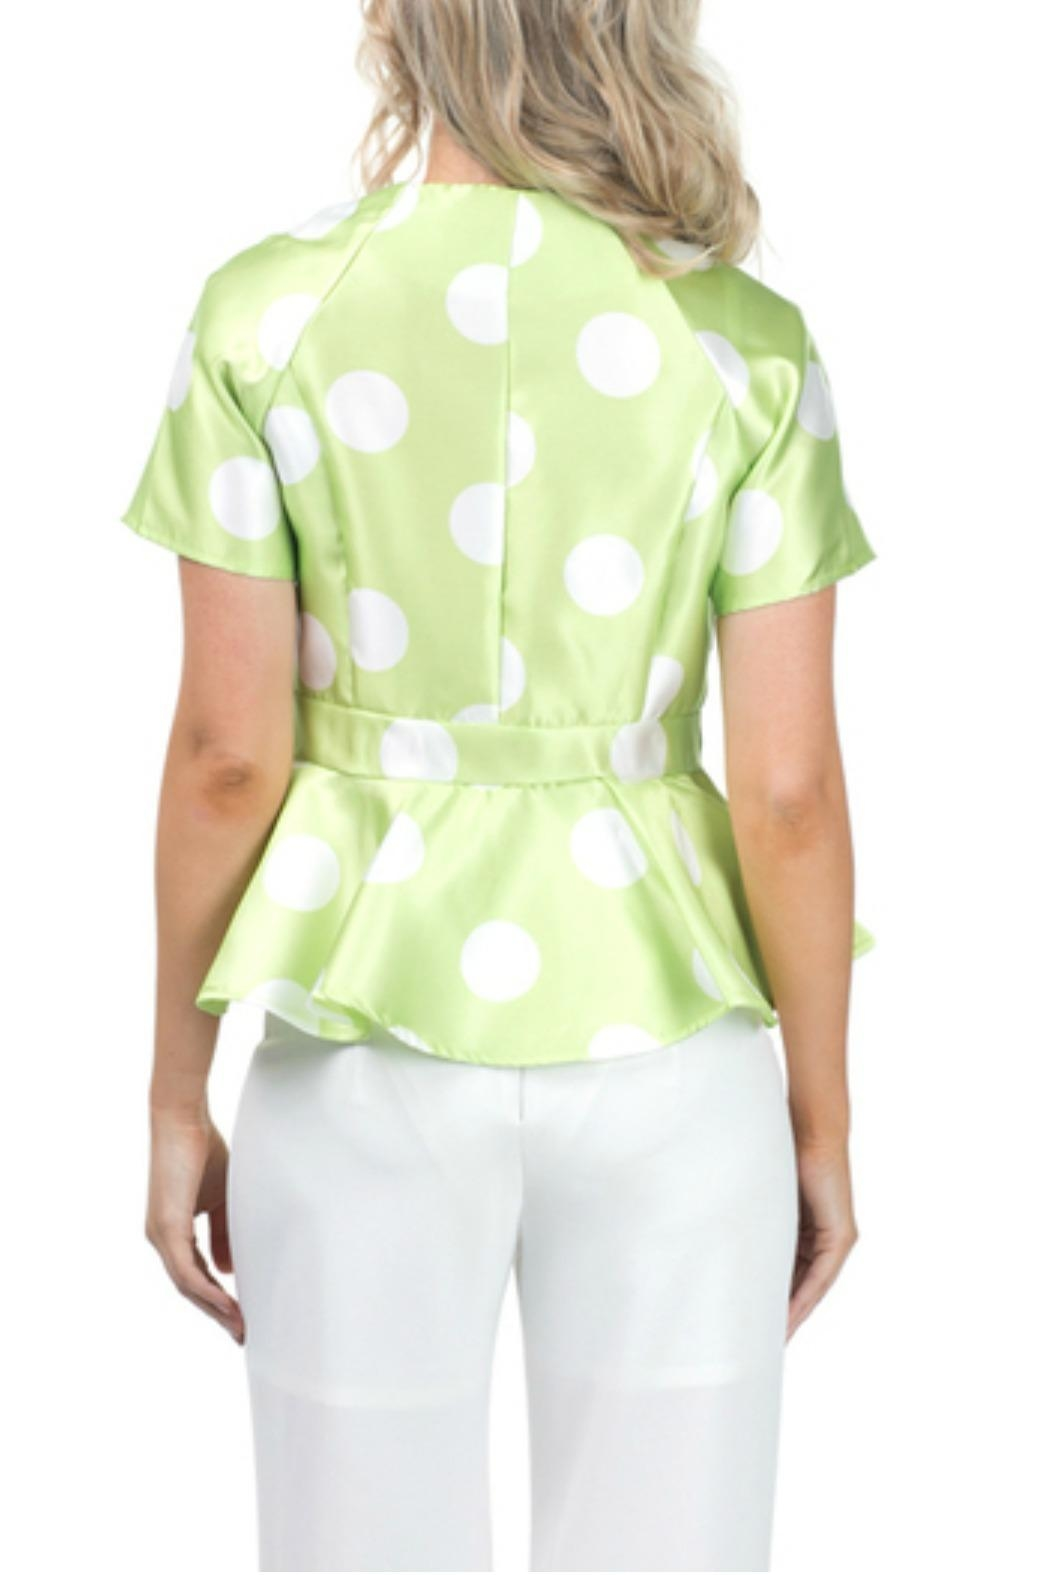 cqbycq Peplum Blouse Top - Side Cropped Image